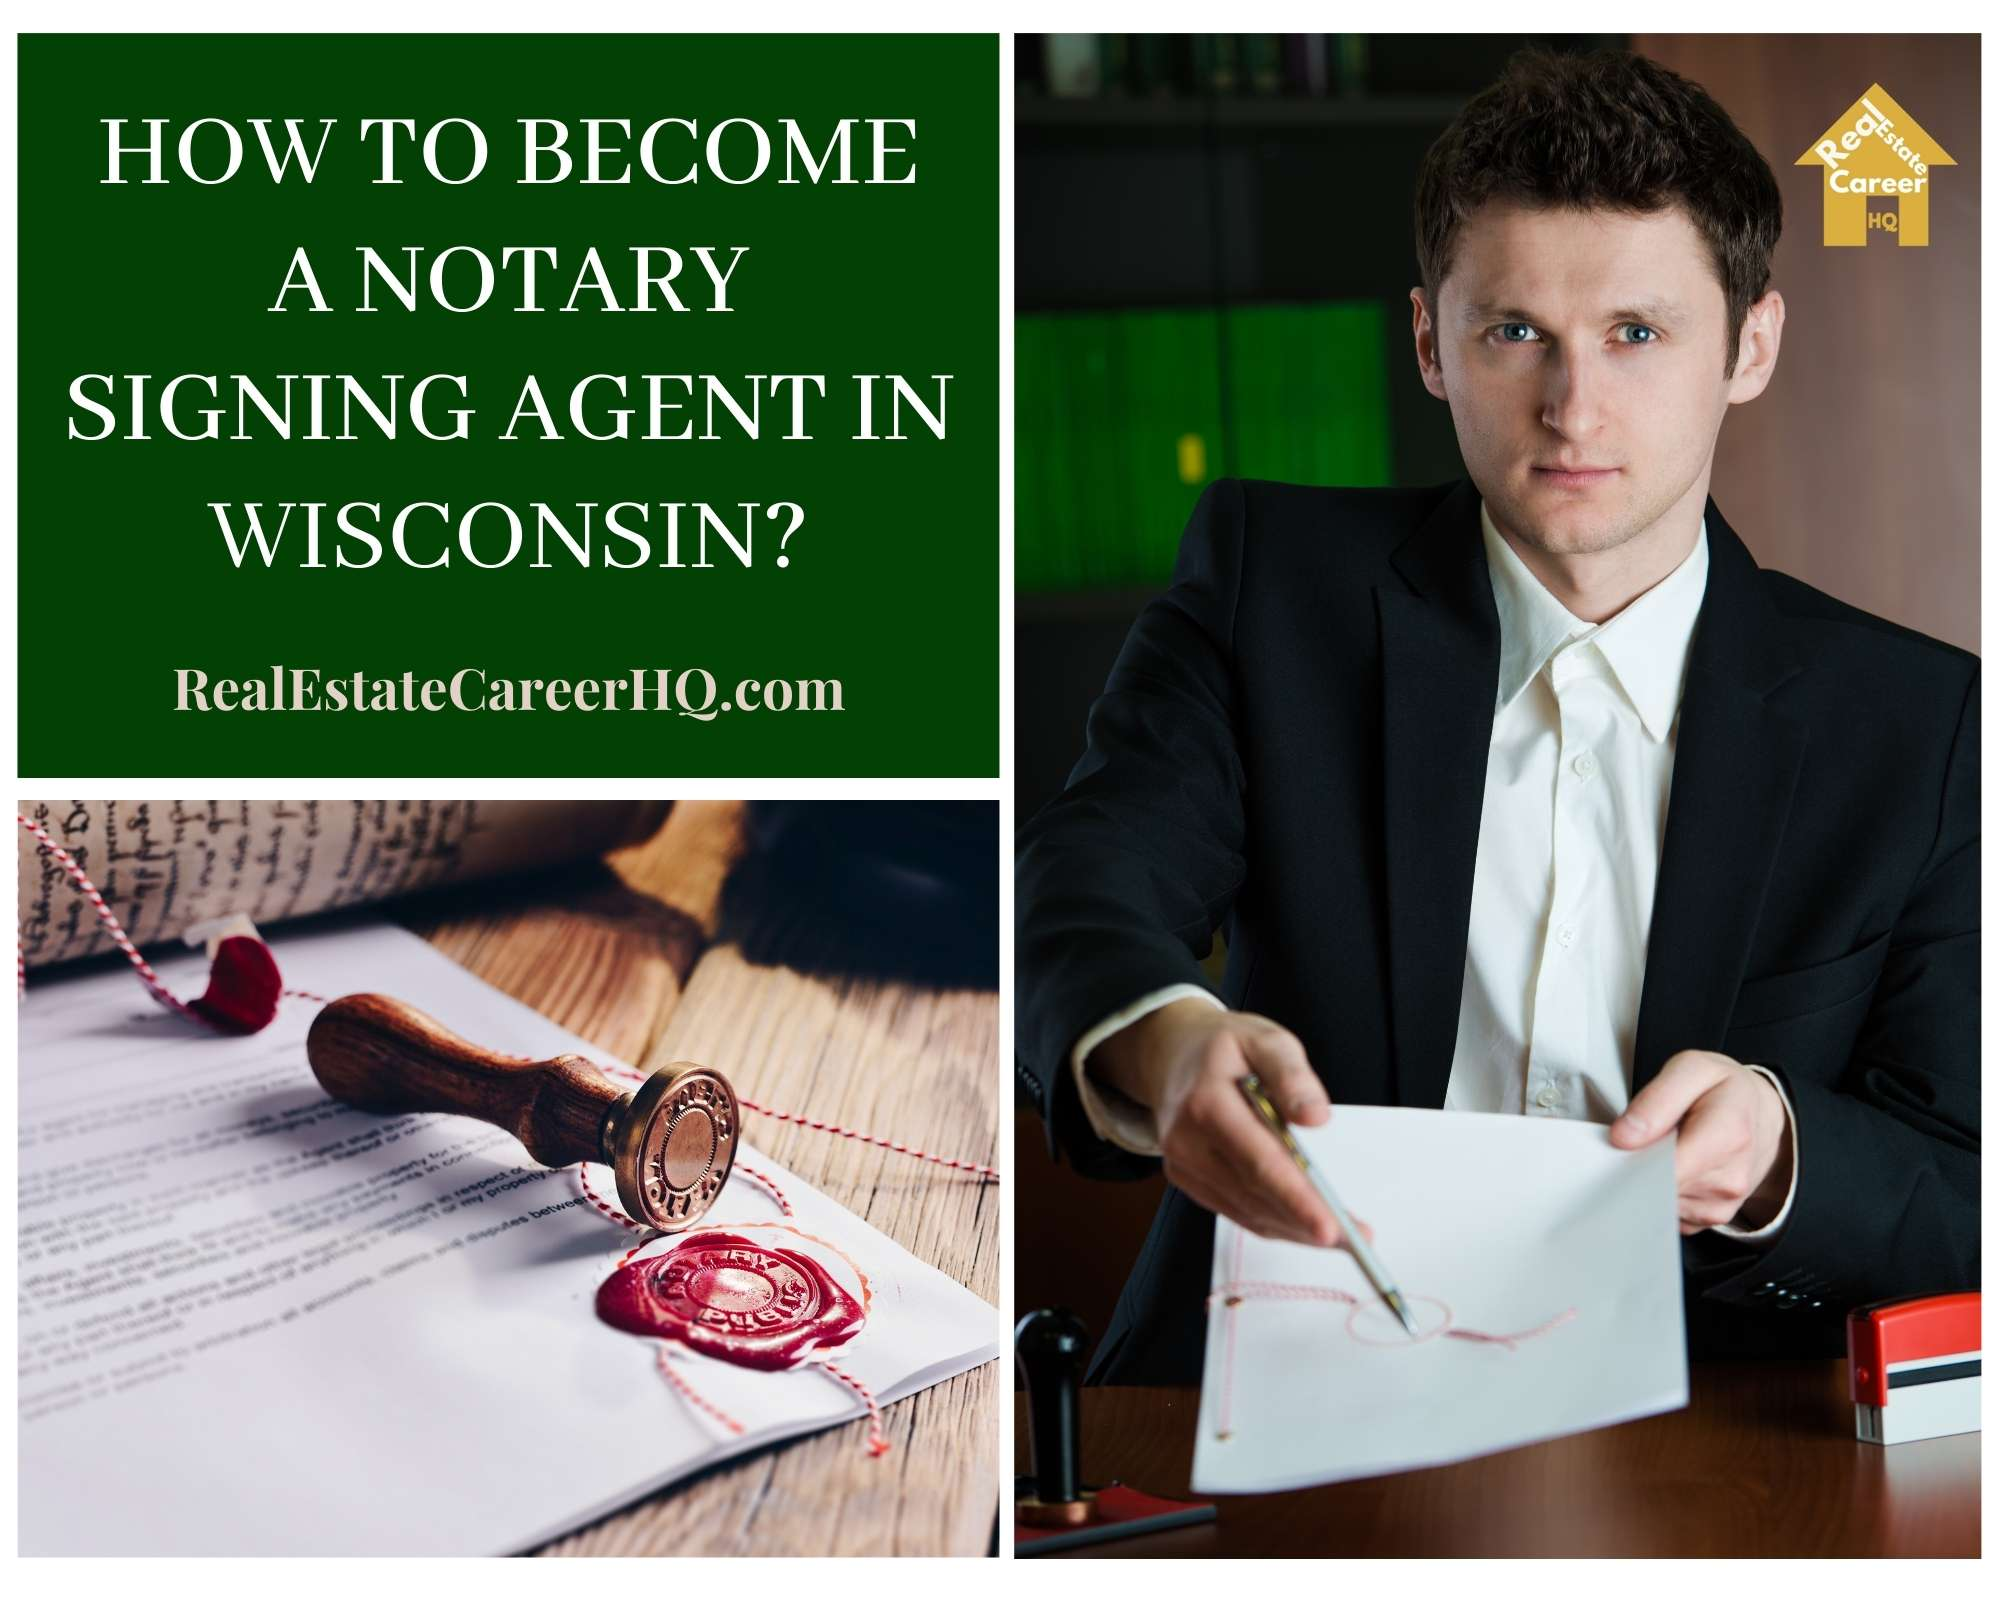 How to Become a Notary Signing Agent in Wisconsin